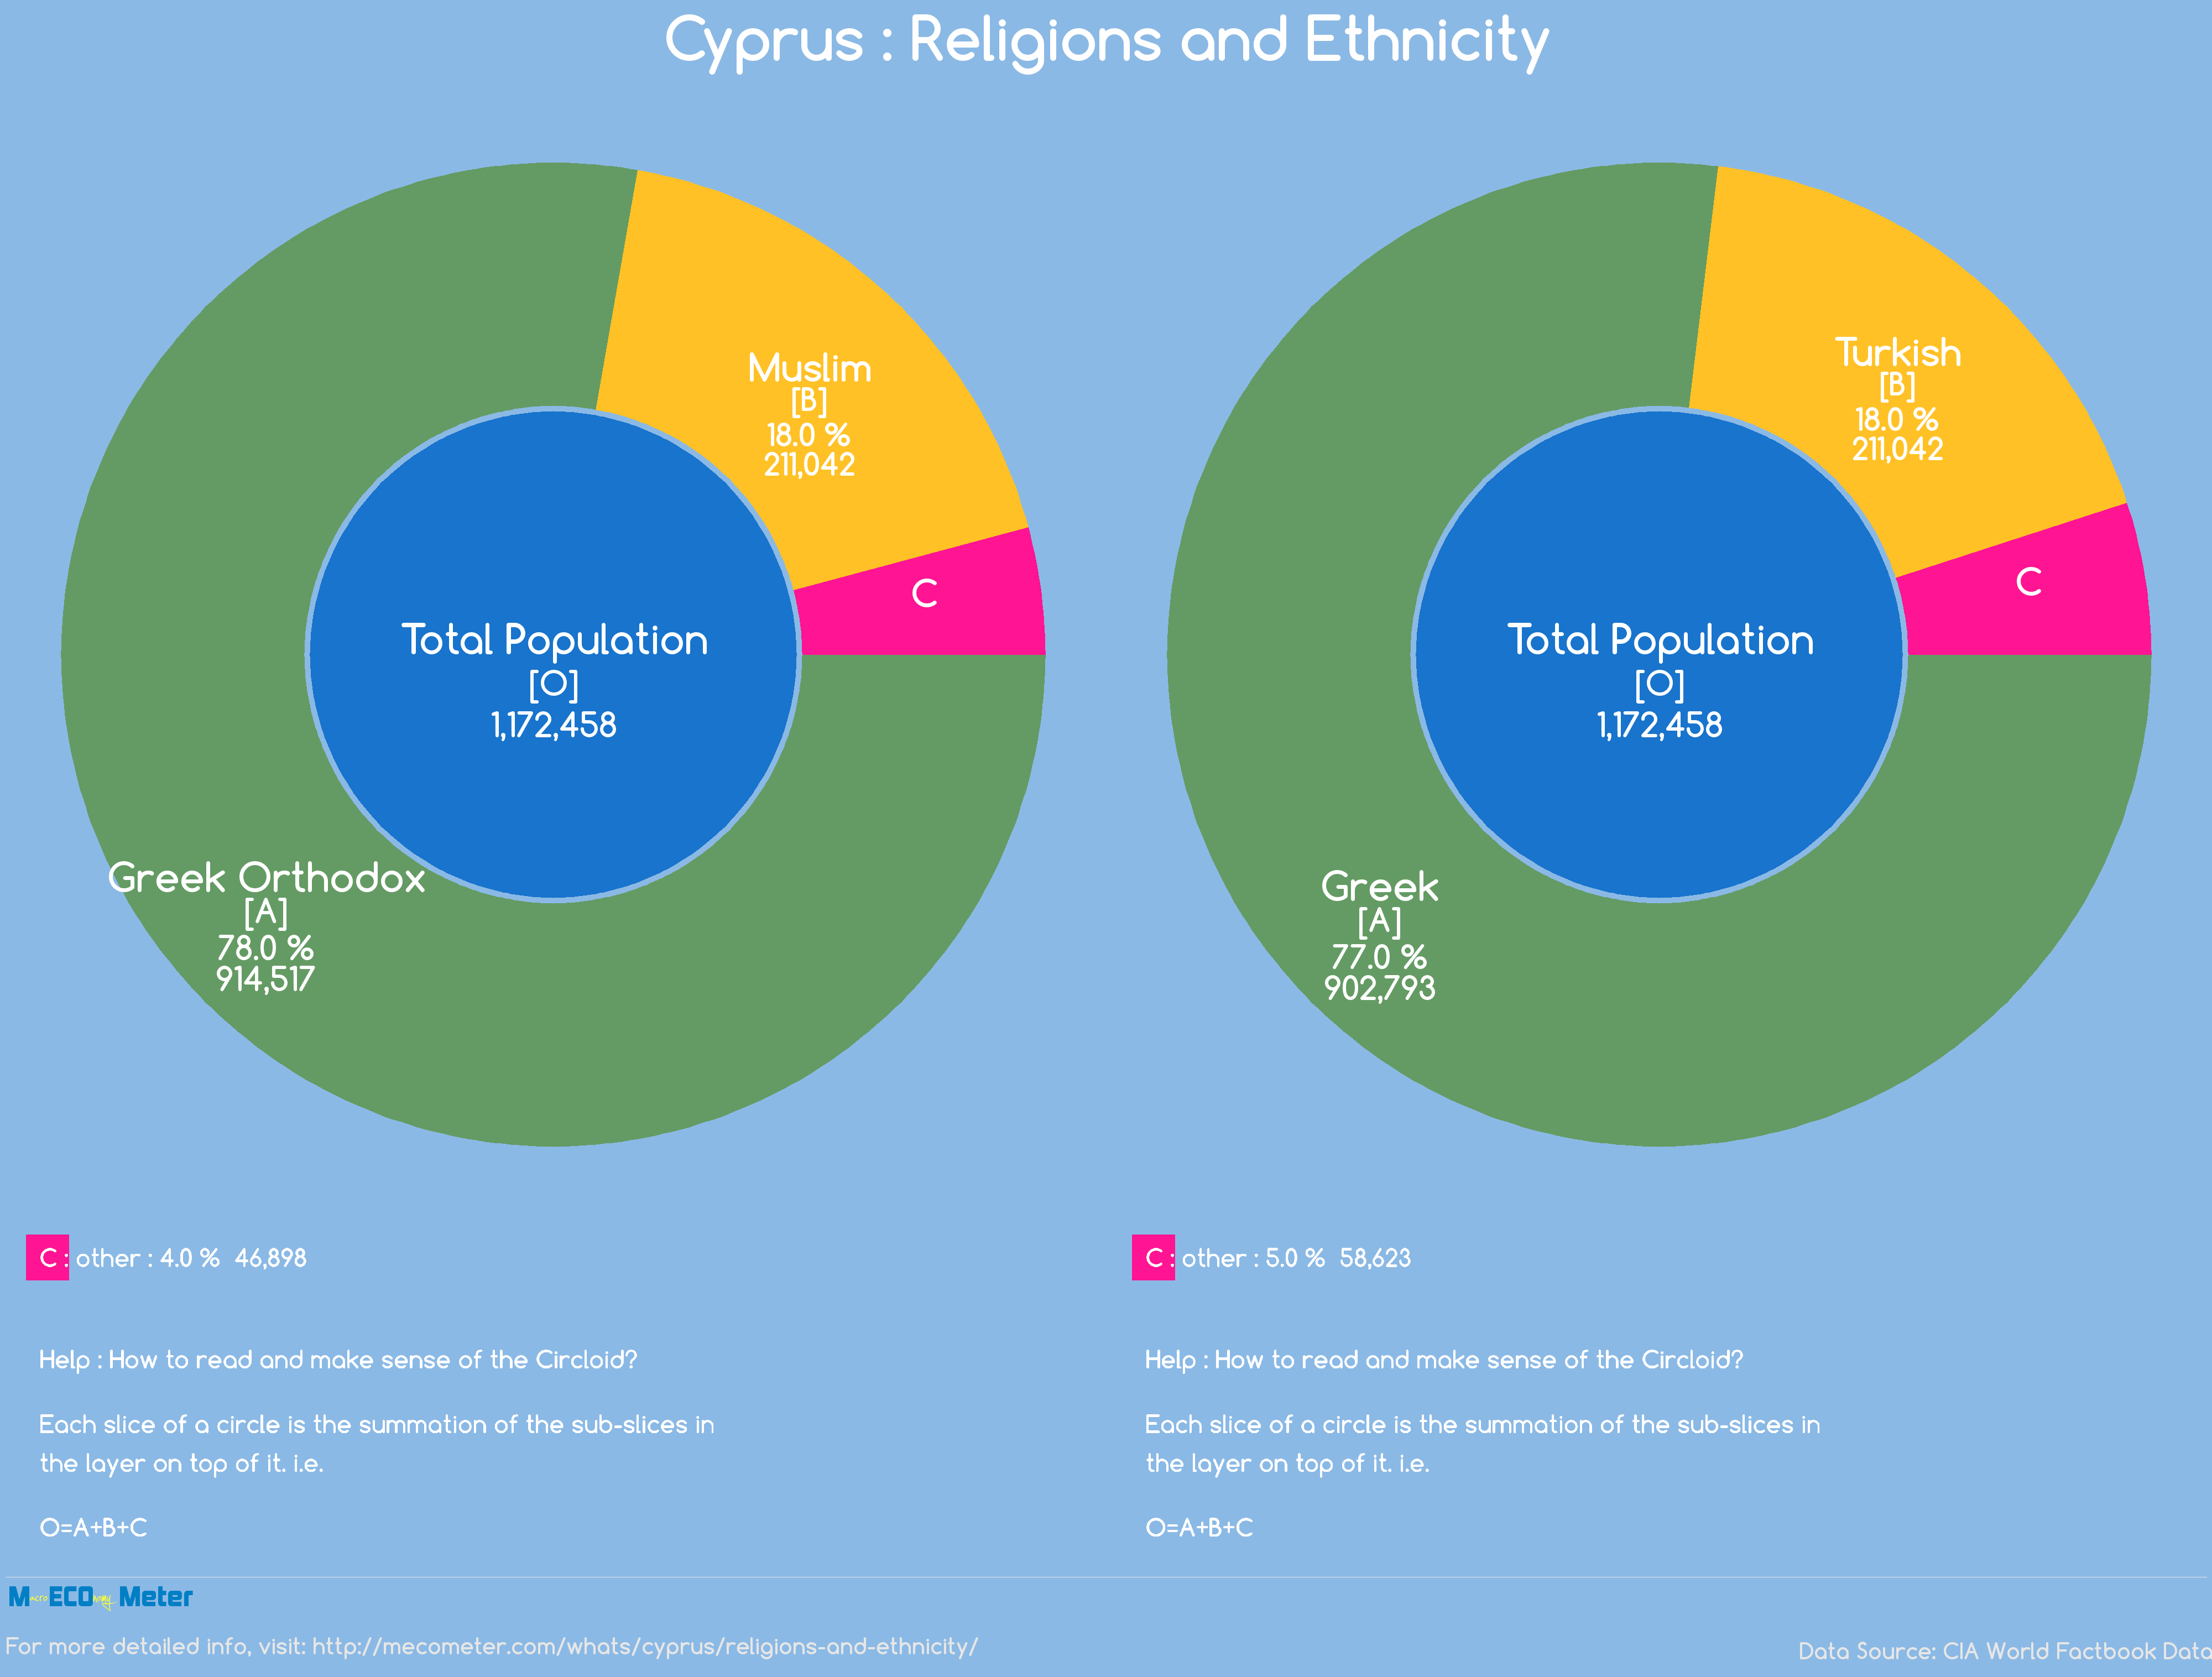 Cyprus : Religions and Ethnicity